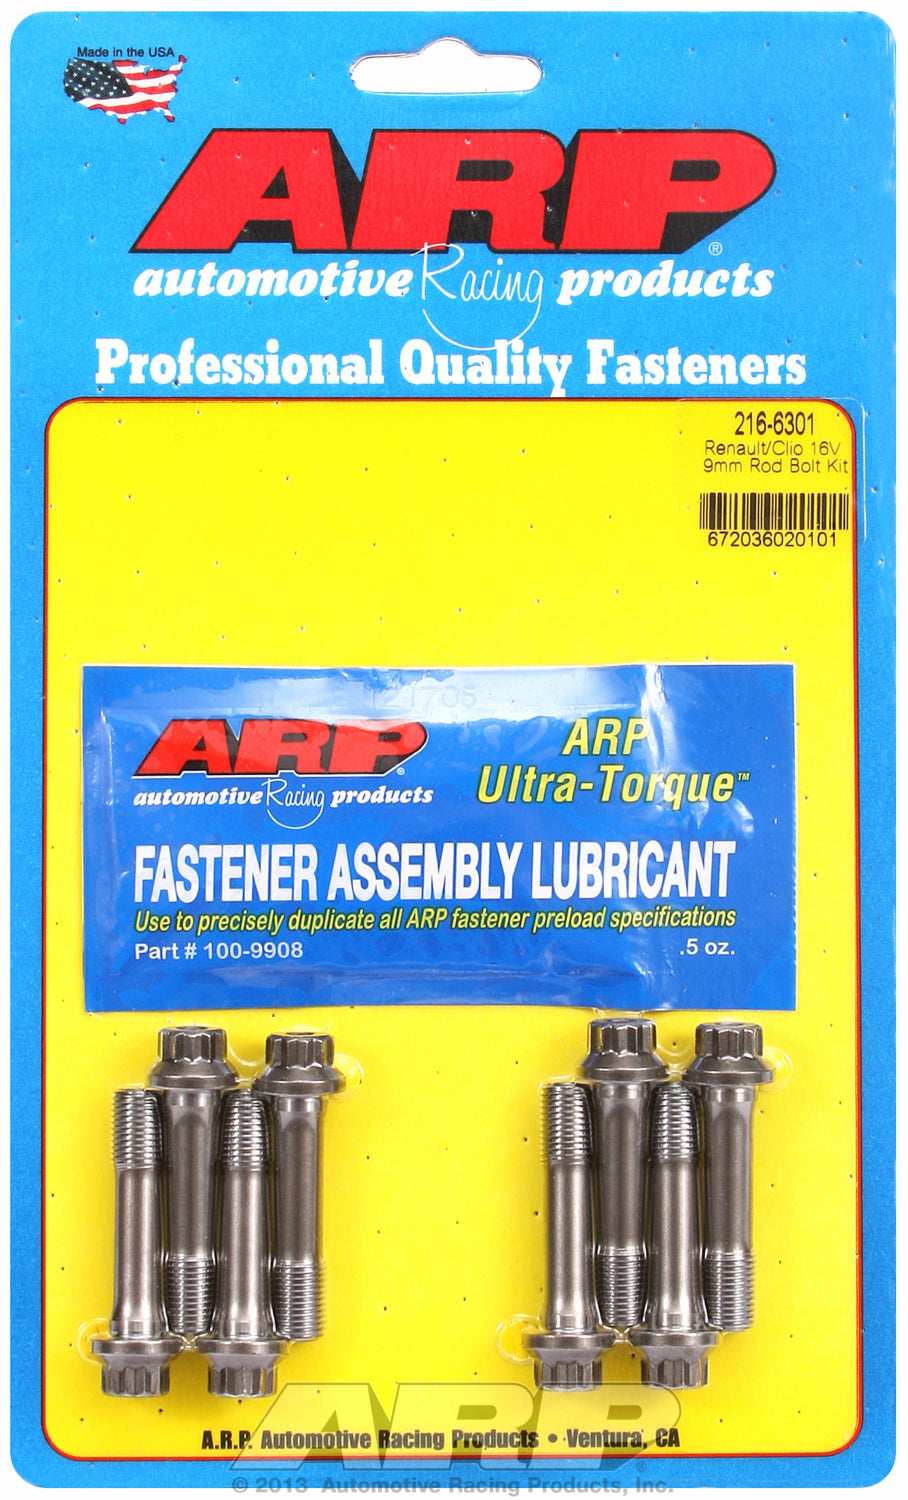 Pro Series ARP2000 Complete Rod Bolt Kit for Renault Clio (F4R) 16V M9